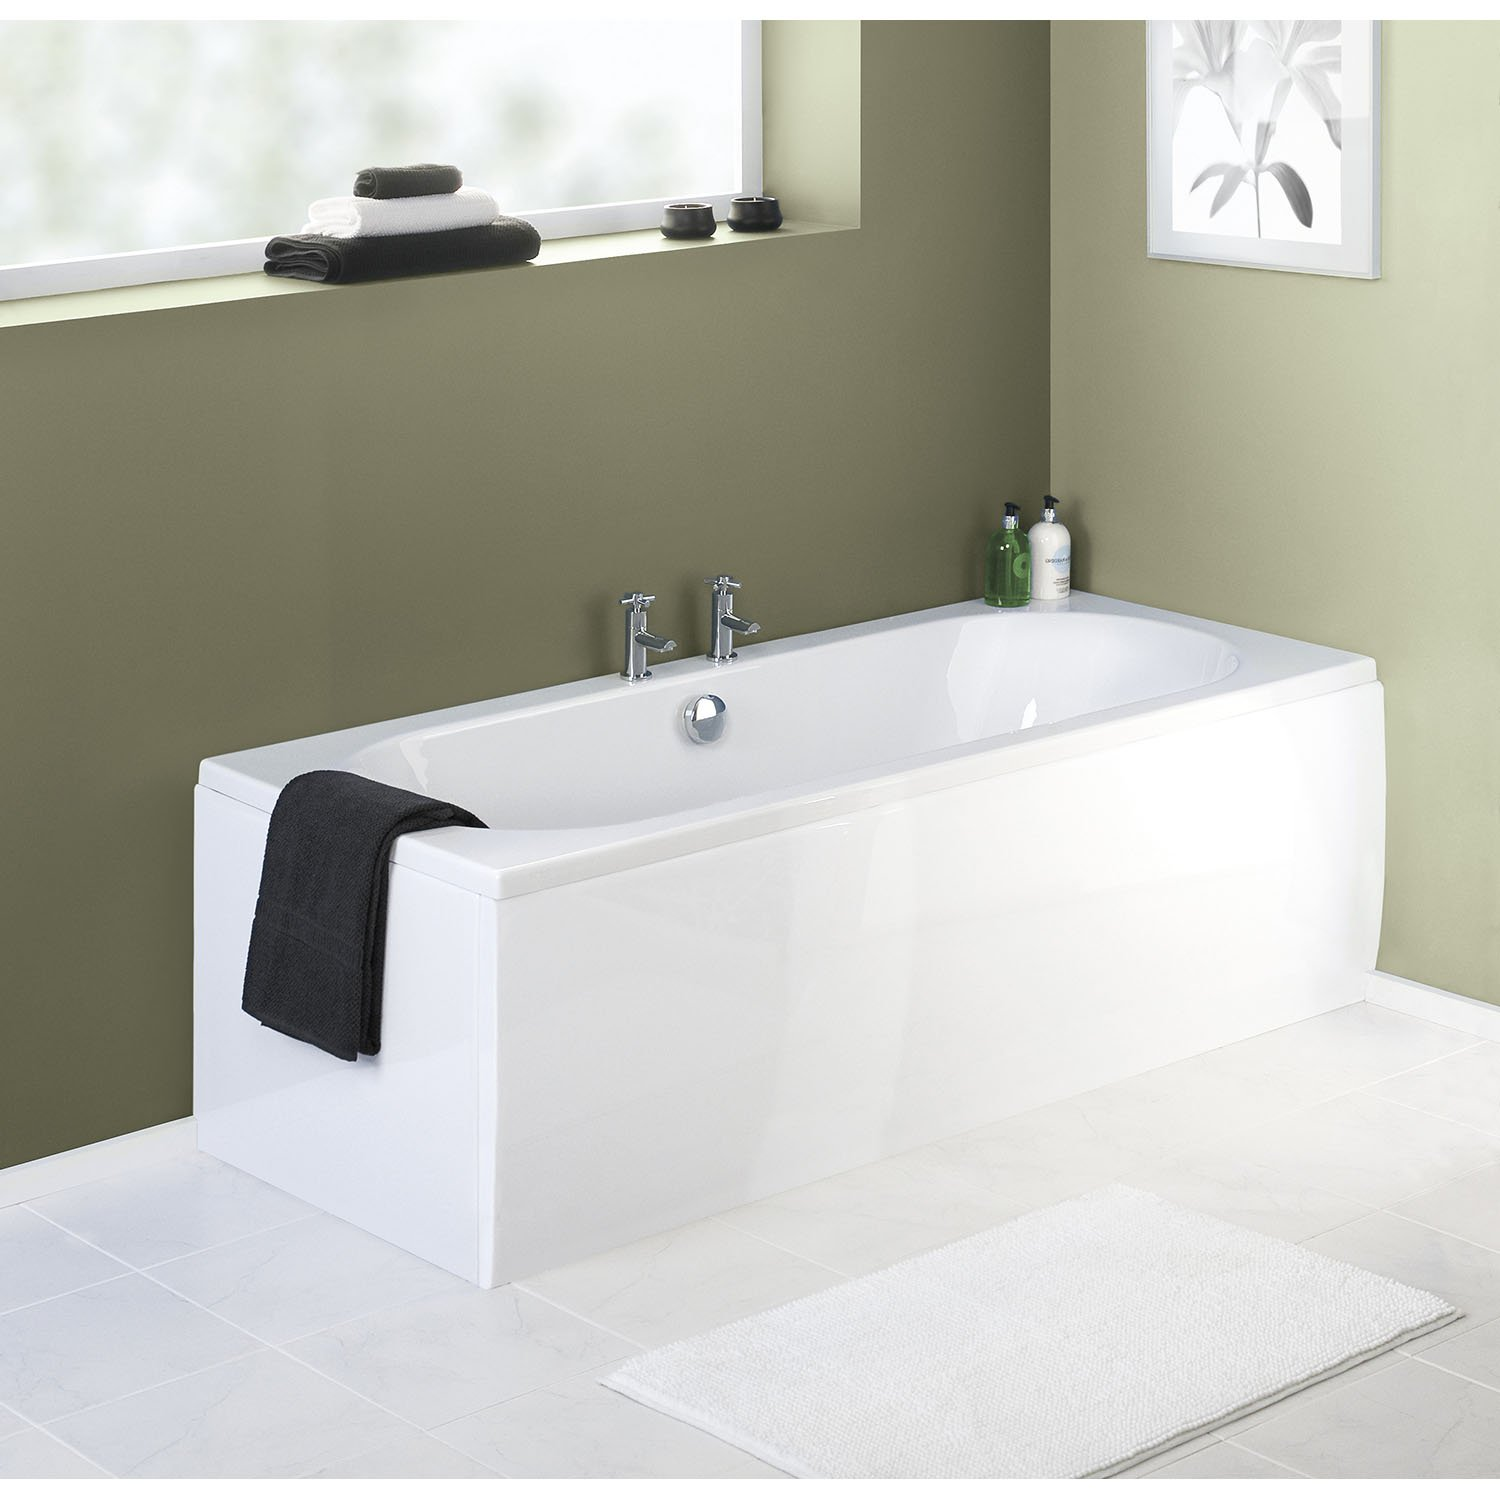 Premier PAN150 Acrylic 1700 Front Bath Panel, White